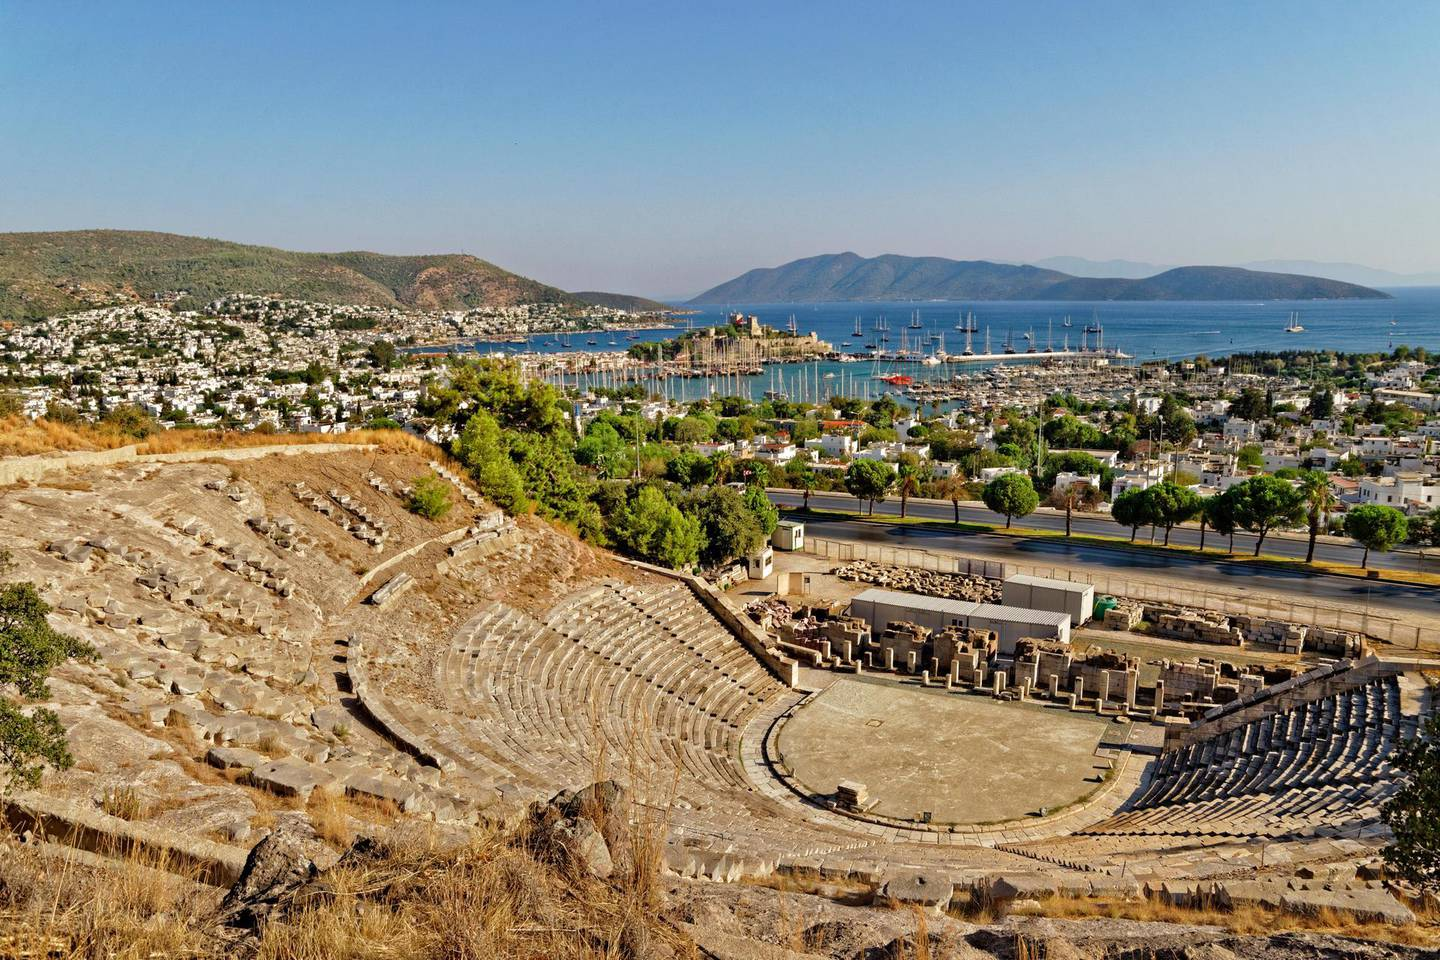 KD67CB St. Peter's Castle at Bodrum, Mugla Province, Turkey, from the amphitheatre. Roy Conchie / Alamy Stock Photo